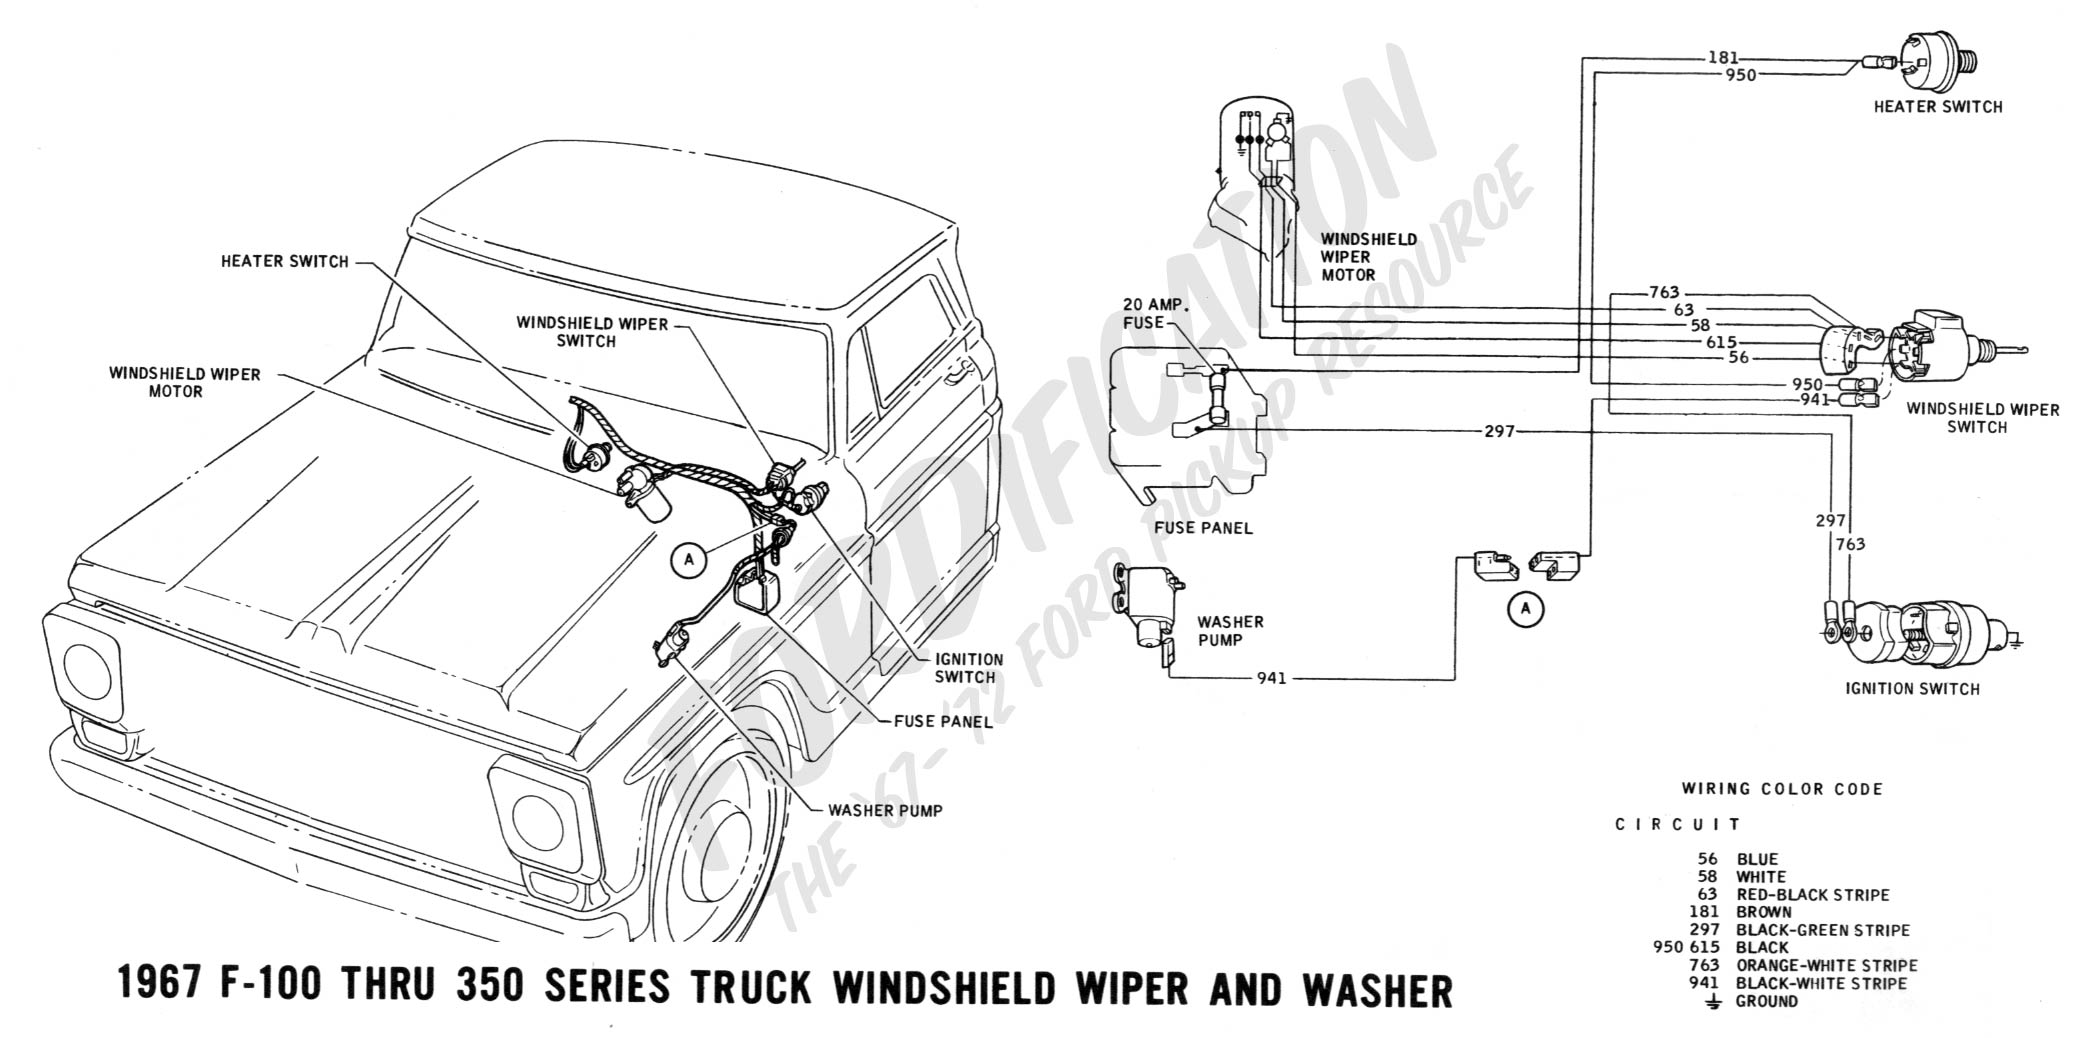 ford truck technical drawings and schematics section h wiring 88 ford wiper switch wiring 1967 f 100 thru f 350 windshield wiper and washer